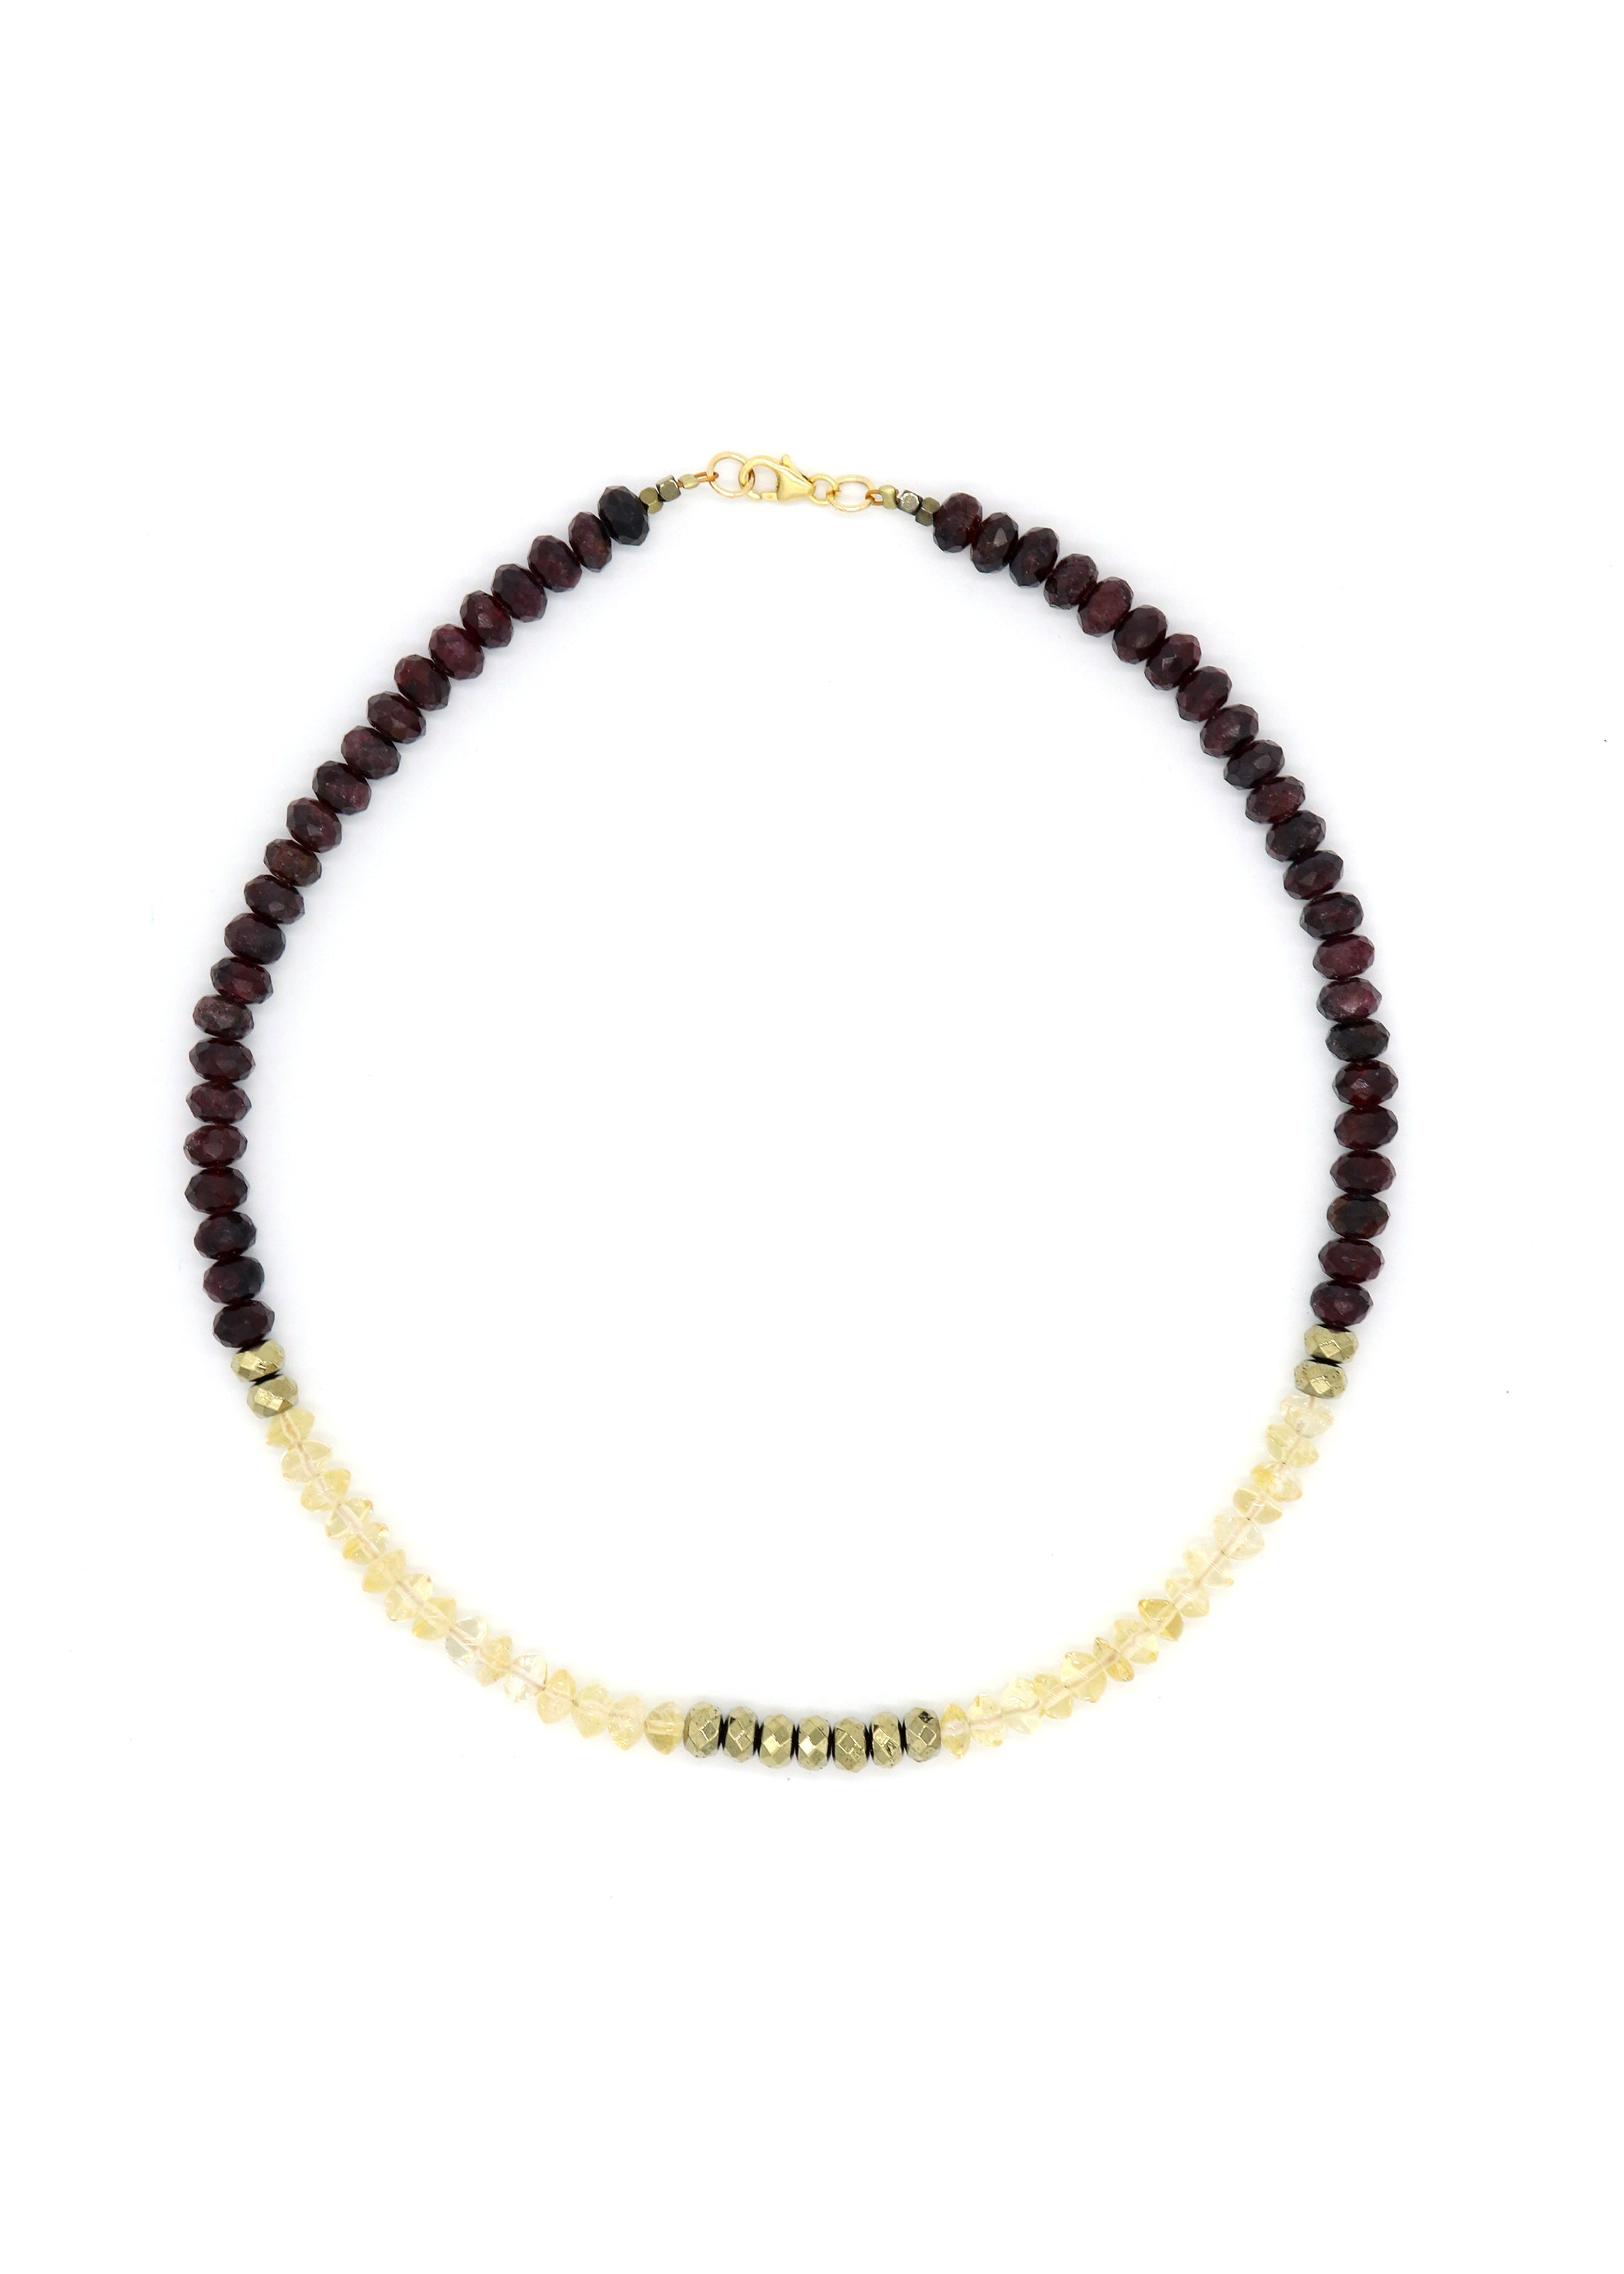 NEW! Limited — Citrine and Garnet Necklace